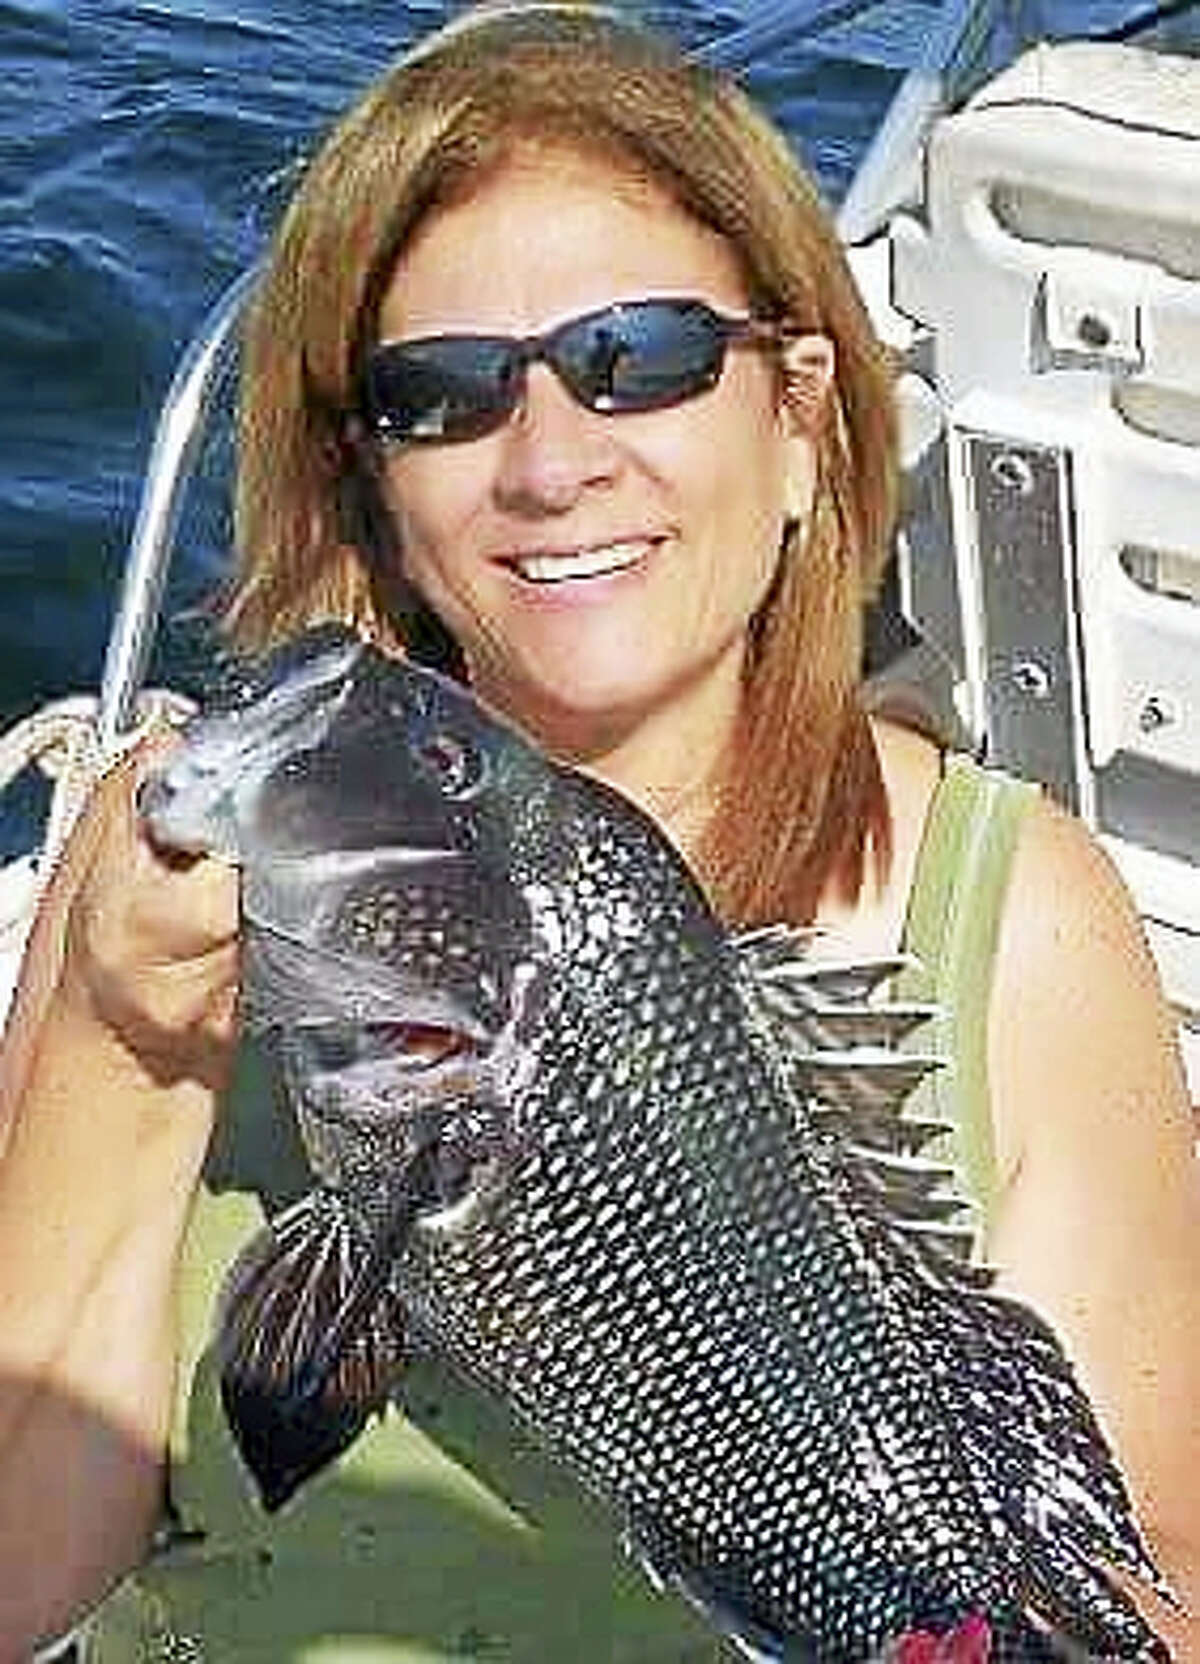 Linda Carman of Middletown is presumed to have drowned at sea.